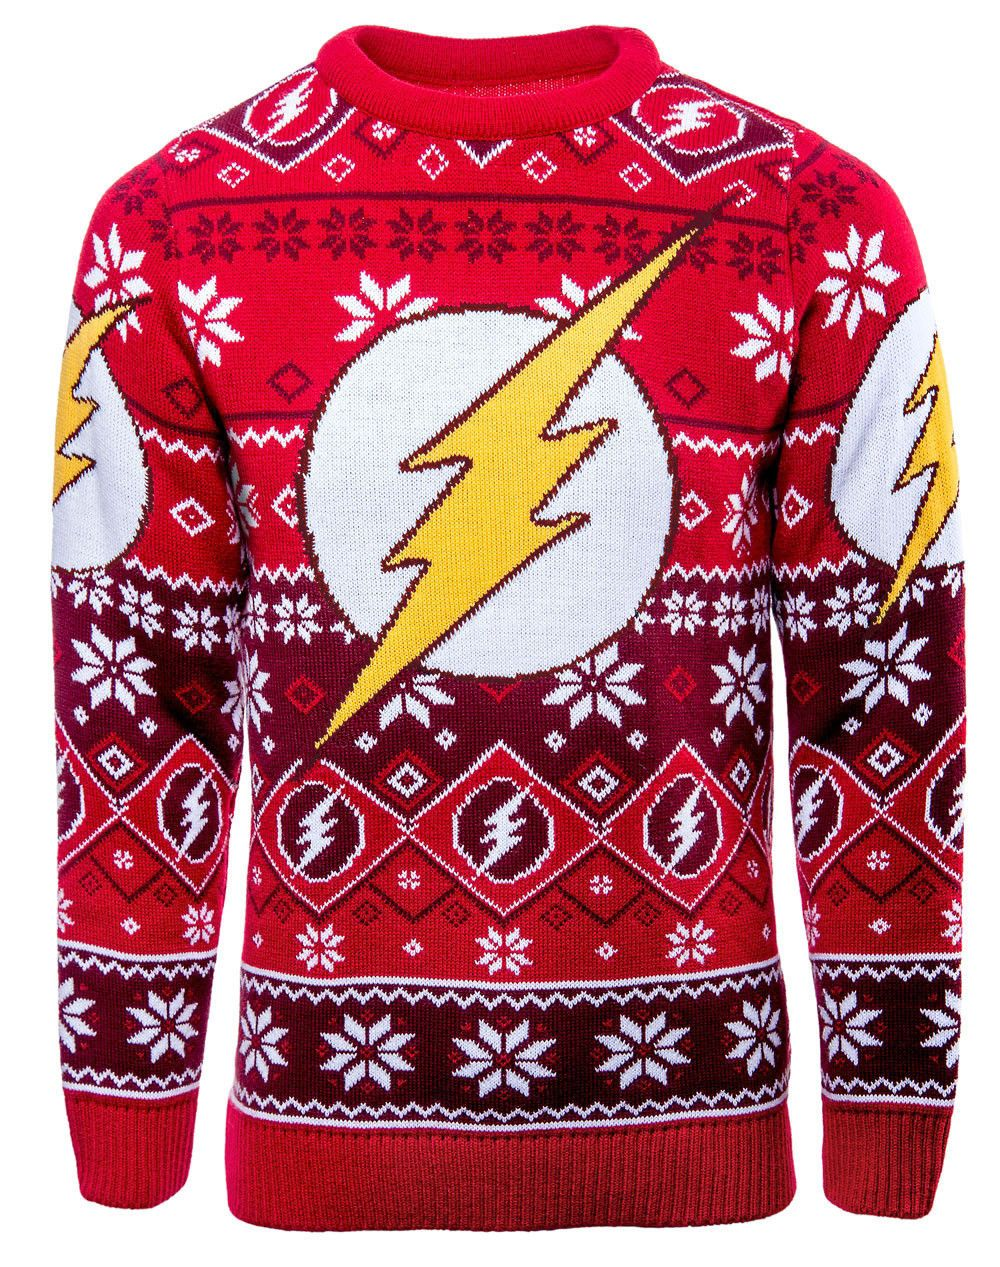 Superhero Ugly Christmas Sweaters.Pin On Clothing Shoes Accessories